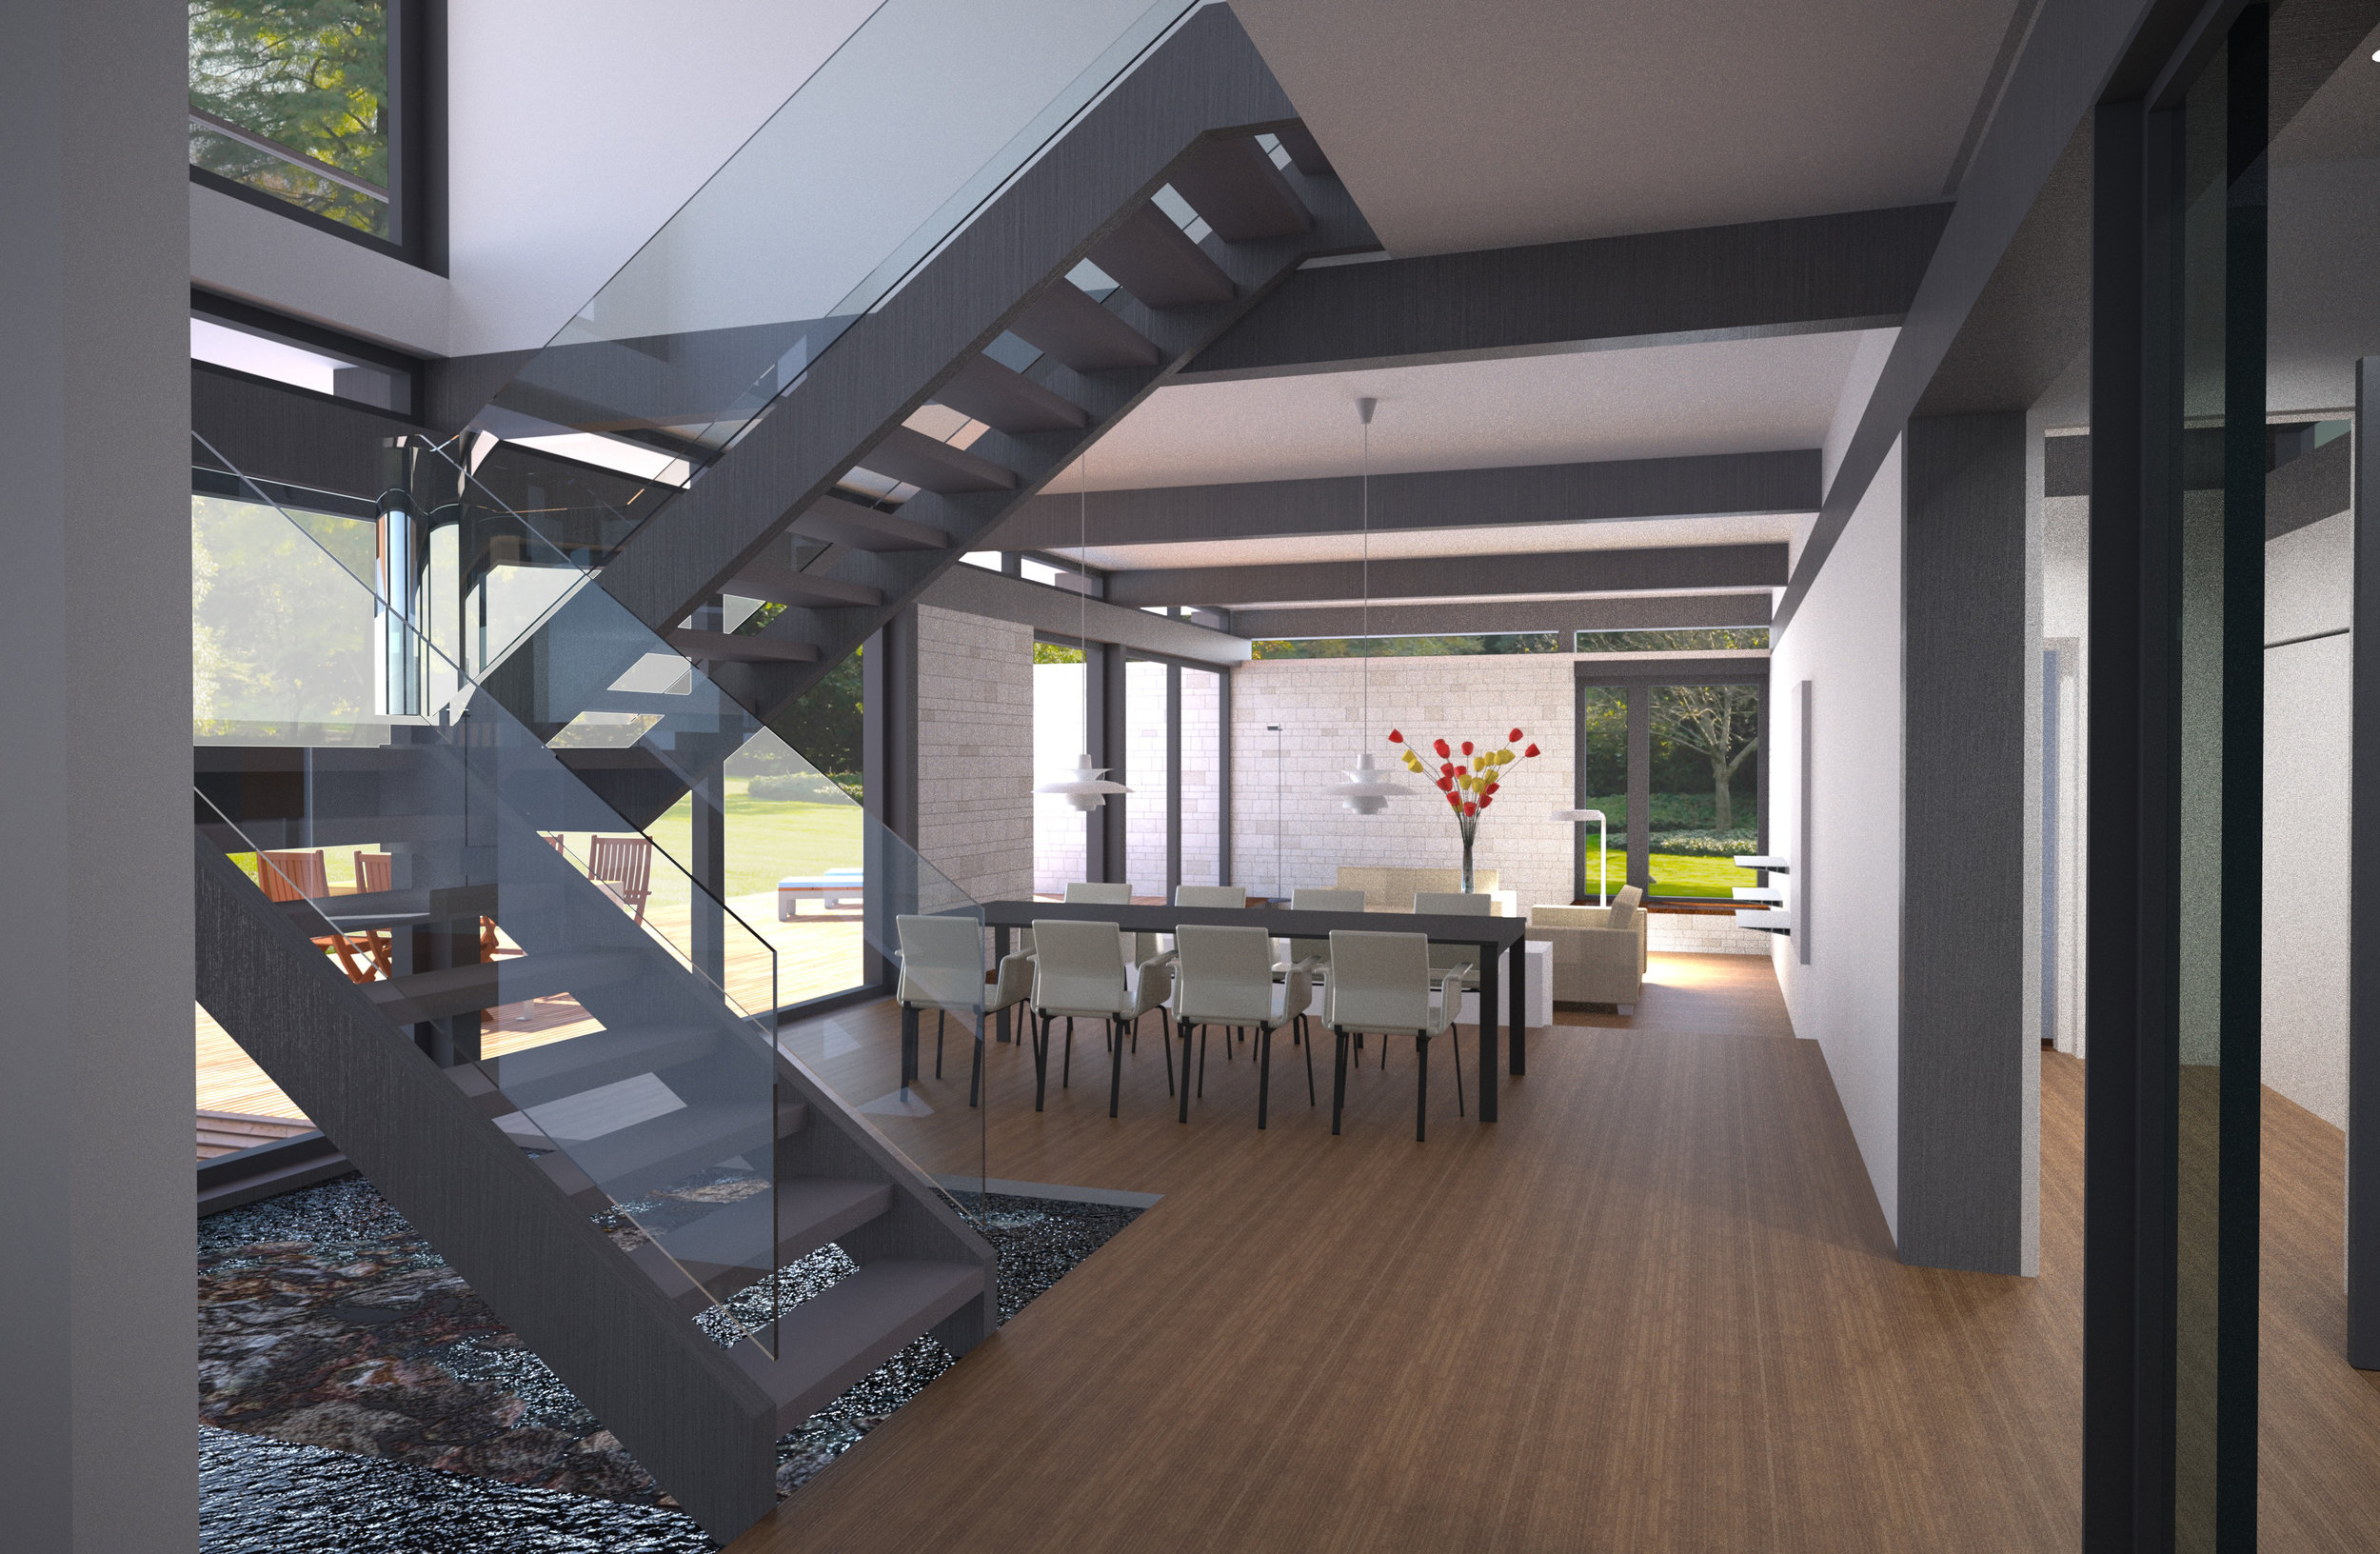 Double height space with glass and metal stairway